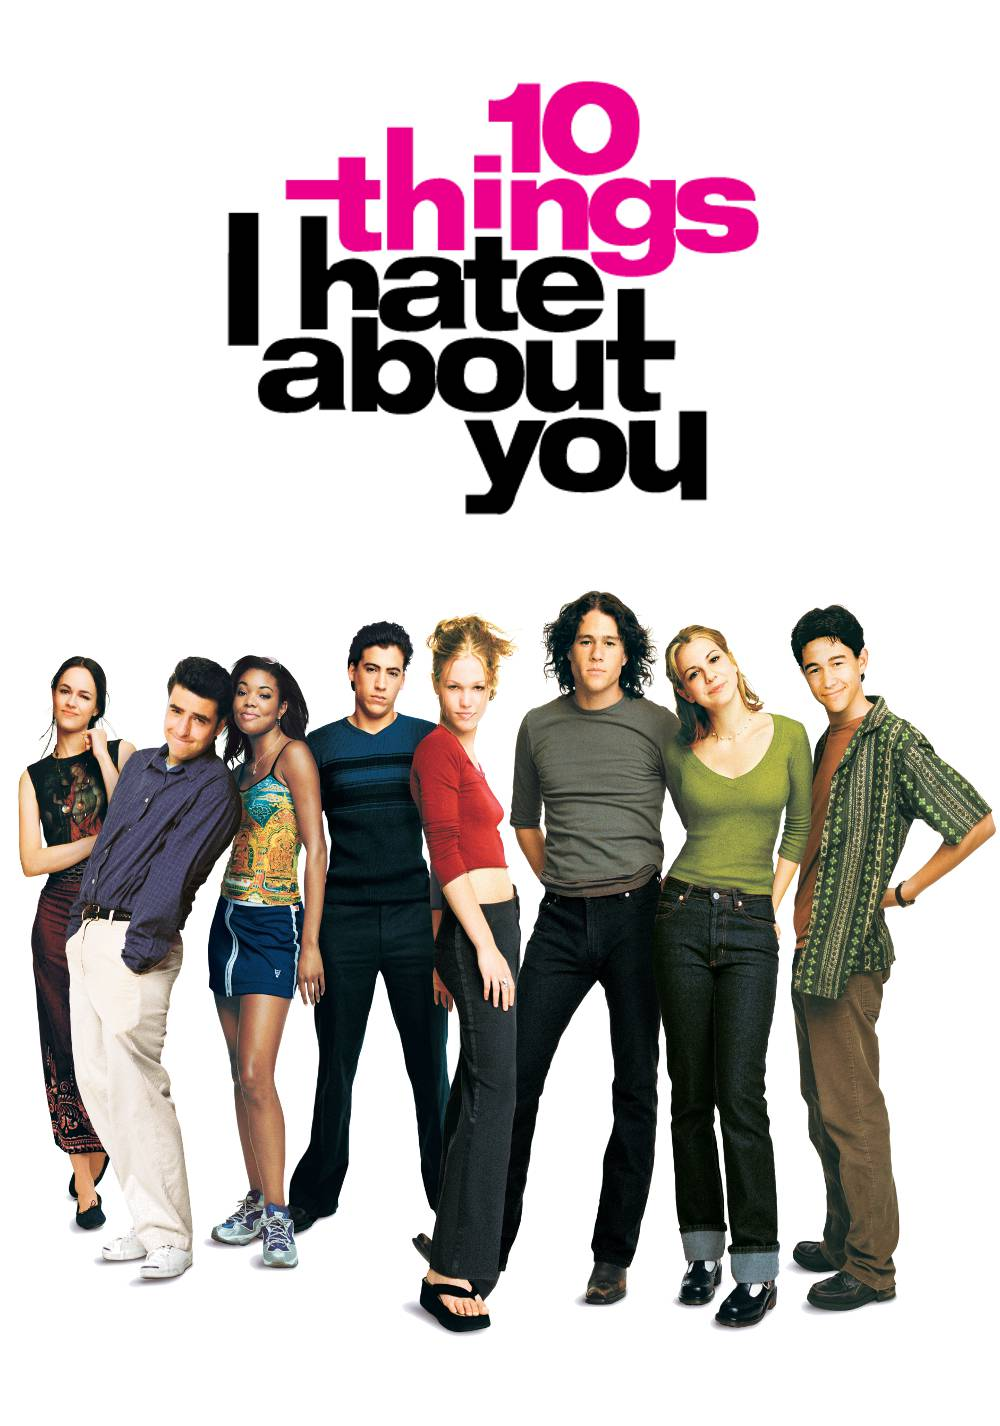 0 cose che odio di Te - 10 Things I hate about You - Kat Stratford (Julia Stiles) - Patrick Verona (Heath Ledger)